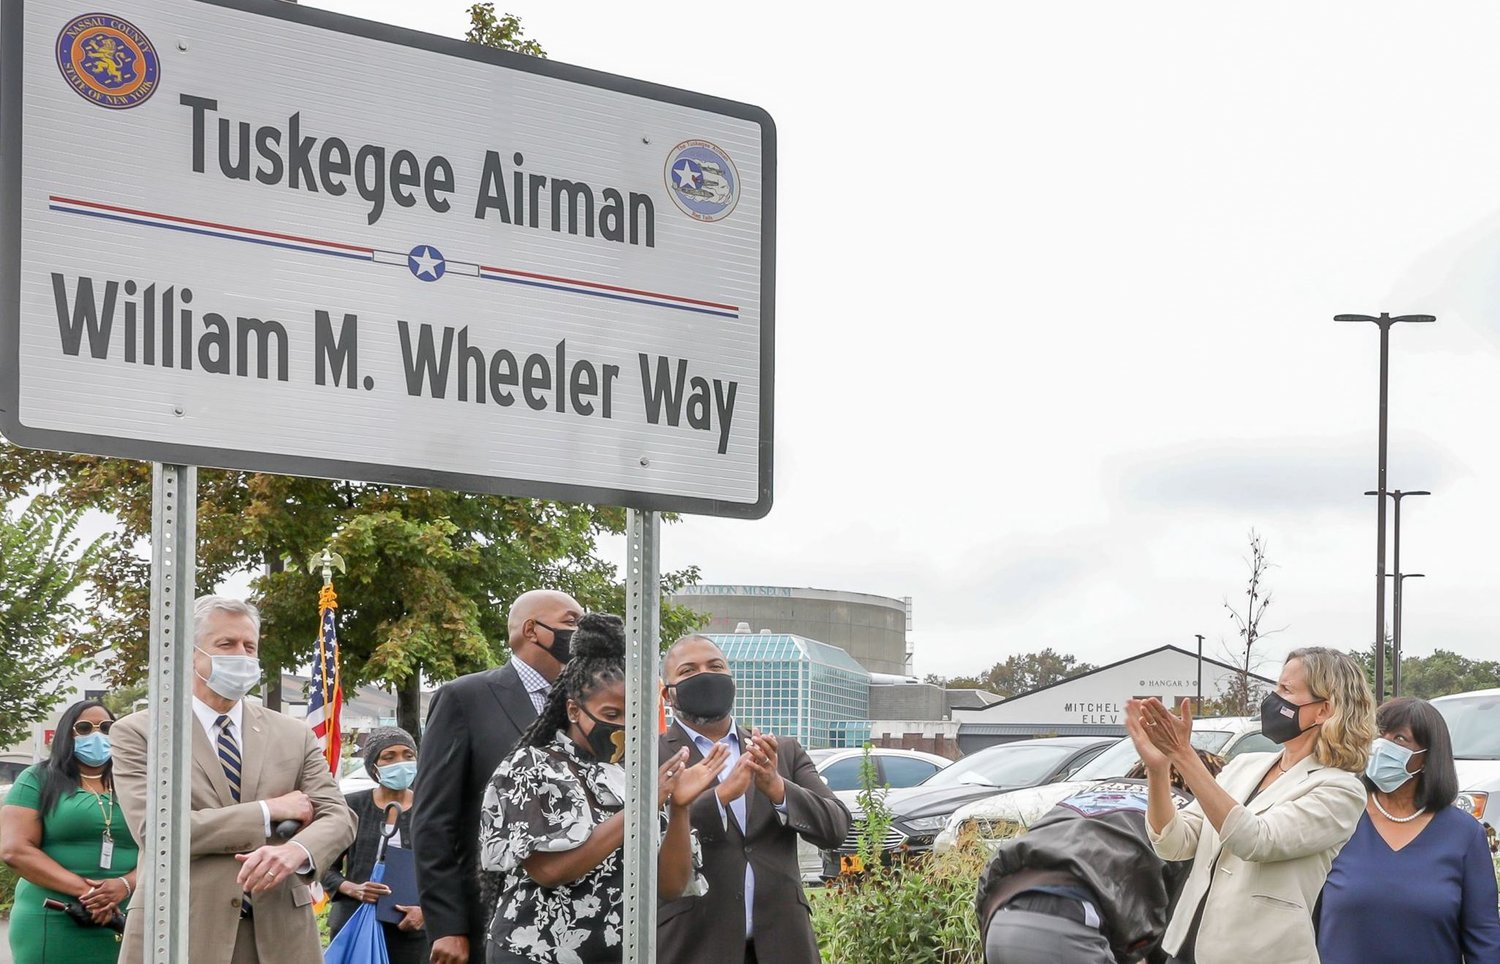 Nassau County Executive Laura Curran, second from right, recently joined other county, New York State and Town of Hempstead officials to rename a section of Charles Lindbergh Boulevard in Uniondale as William Wheeler Way in honor of the Tuskegee Airman. Photo courtesy of Nassau County